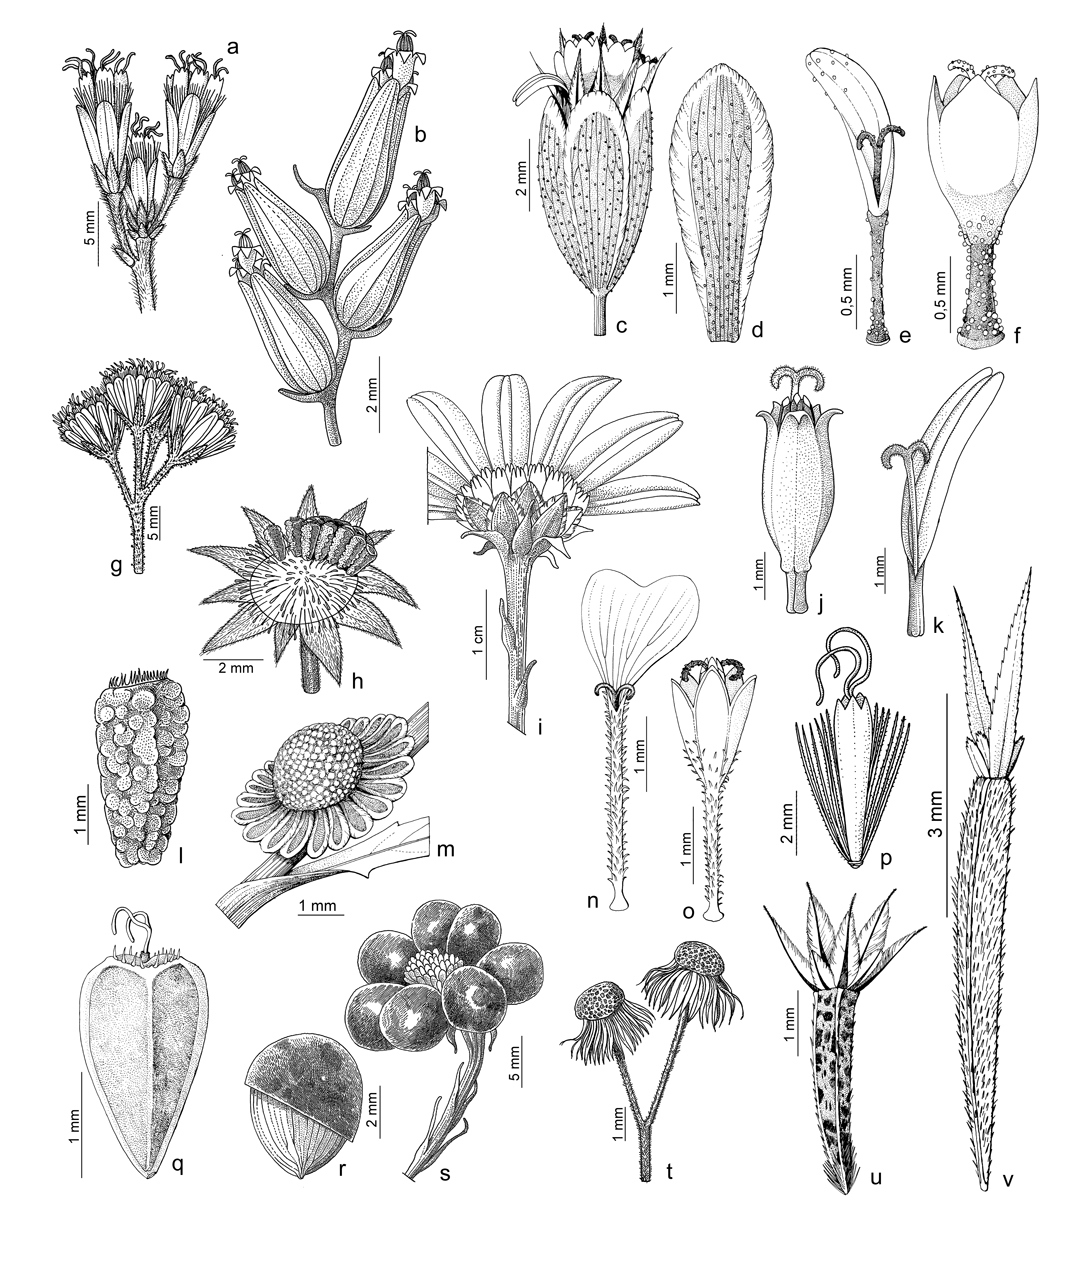 A Year of illustrations for Flora Ibérica. Some final details. a) detail of the inflorescence of Eupatorium cannabinum, b) detail of the inflorescence Flaveria bidentis, c) capitula of Schkuhria pinnata, d) bract of Schkuhria pinnata, e) radial flower of Schkuhria pinnata, f) disc flower of Schkuhria pinnata, g) detail of the inflorescence of Ageratina adenophora, h) floral receptacle during the fruiting of Ecliptra prostrata, i) capitula of Crhysanthemoides monilifera, j) disc flower of Ecliptra prostrata, k) radial flower of Ecliptra prostrata, l) achene of Ecliptra prostrata, m) floral receptacle during the fruiting of Centipeda cunninghamii, n) radial flower of Schkuhria pinnata, o) disc flower of Schkuhria pinnata, p) disc flower of Eupatorium cannabinum, q) achene of Iva xanthifolia, r) ​​fleshy achene of Crhysanthemoides monilifera, s) fruit of Crhysanthemoides monilifera, t ) floral receptacle during the fruiting of Conyza bonariensis, u) achene of Schkuhria pinnata, v) achene of Tagetes minuta. Art by Román García Mora.